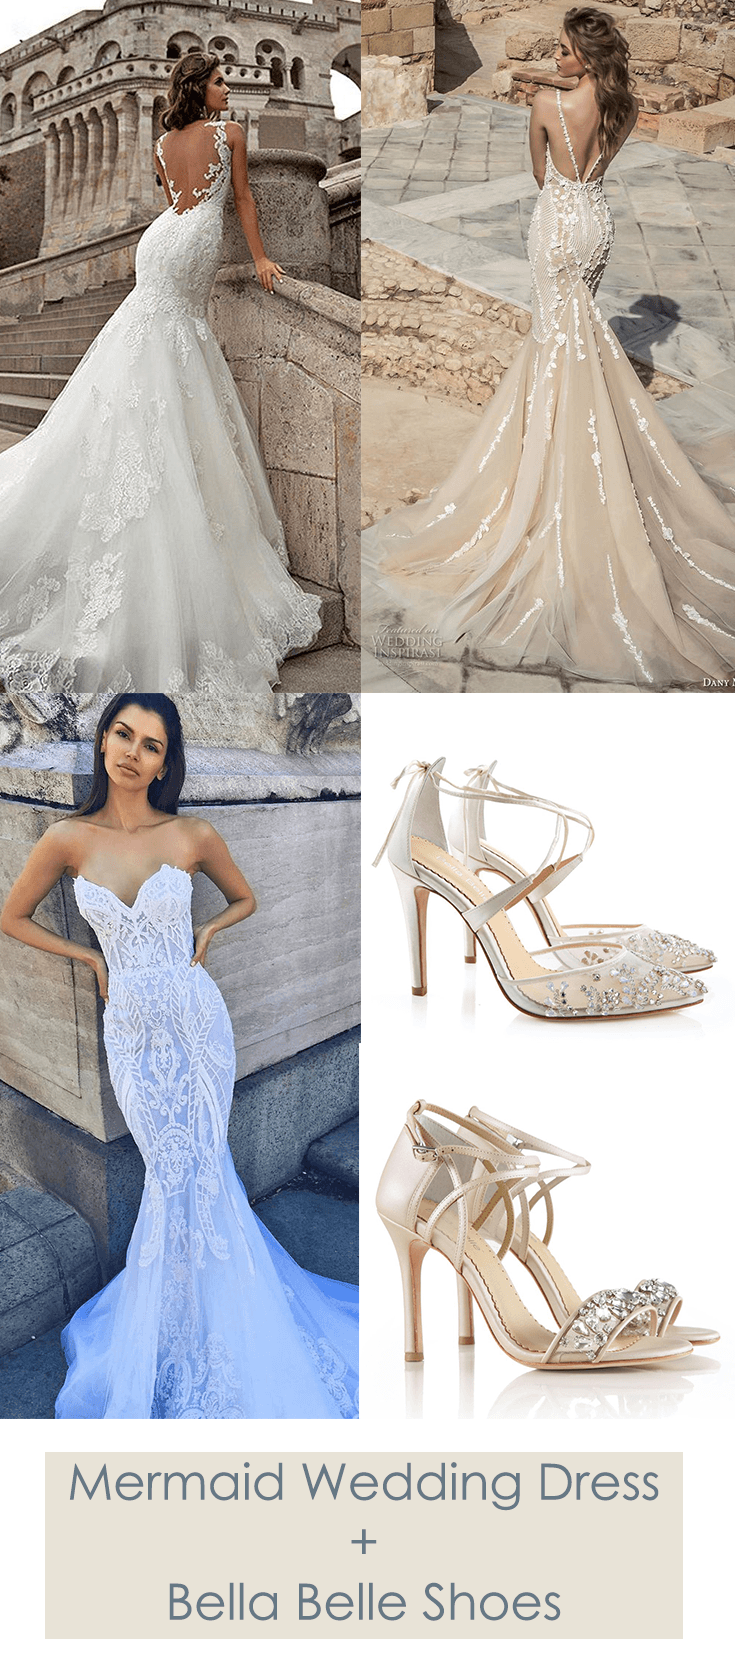 Swoon Worthy Mermaid Wedding Dress By Mila Nova Dany Mizrachi And